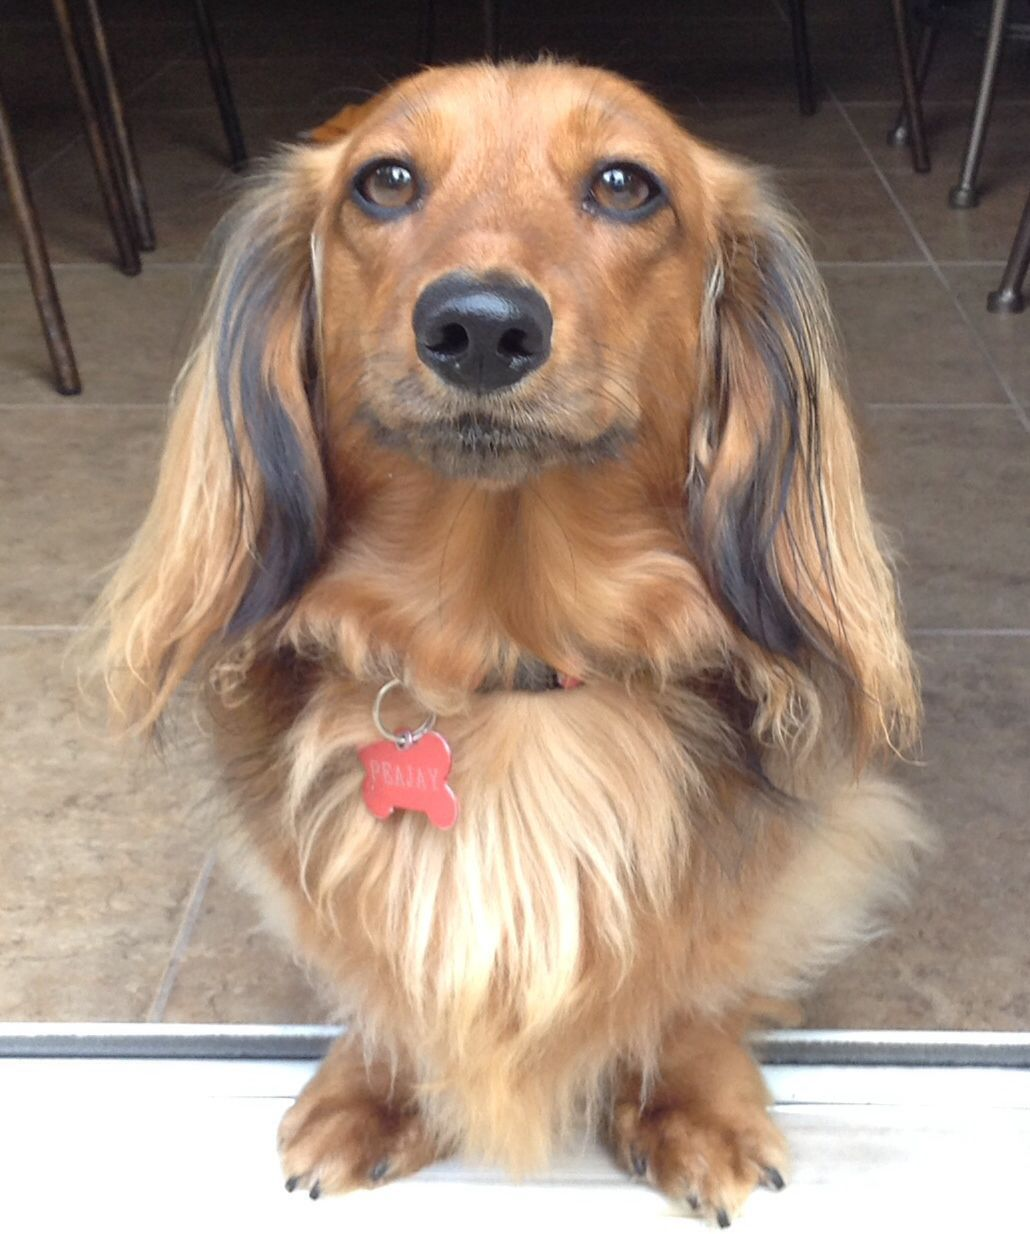 Red dapple miniature dachshund puppies in co al az ar ca ct de